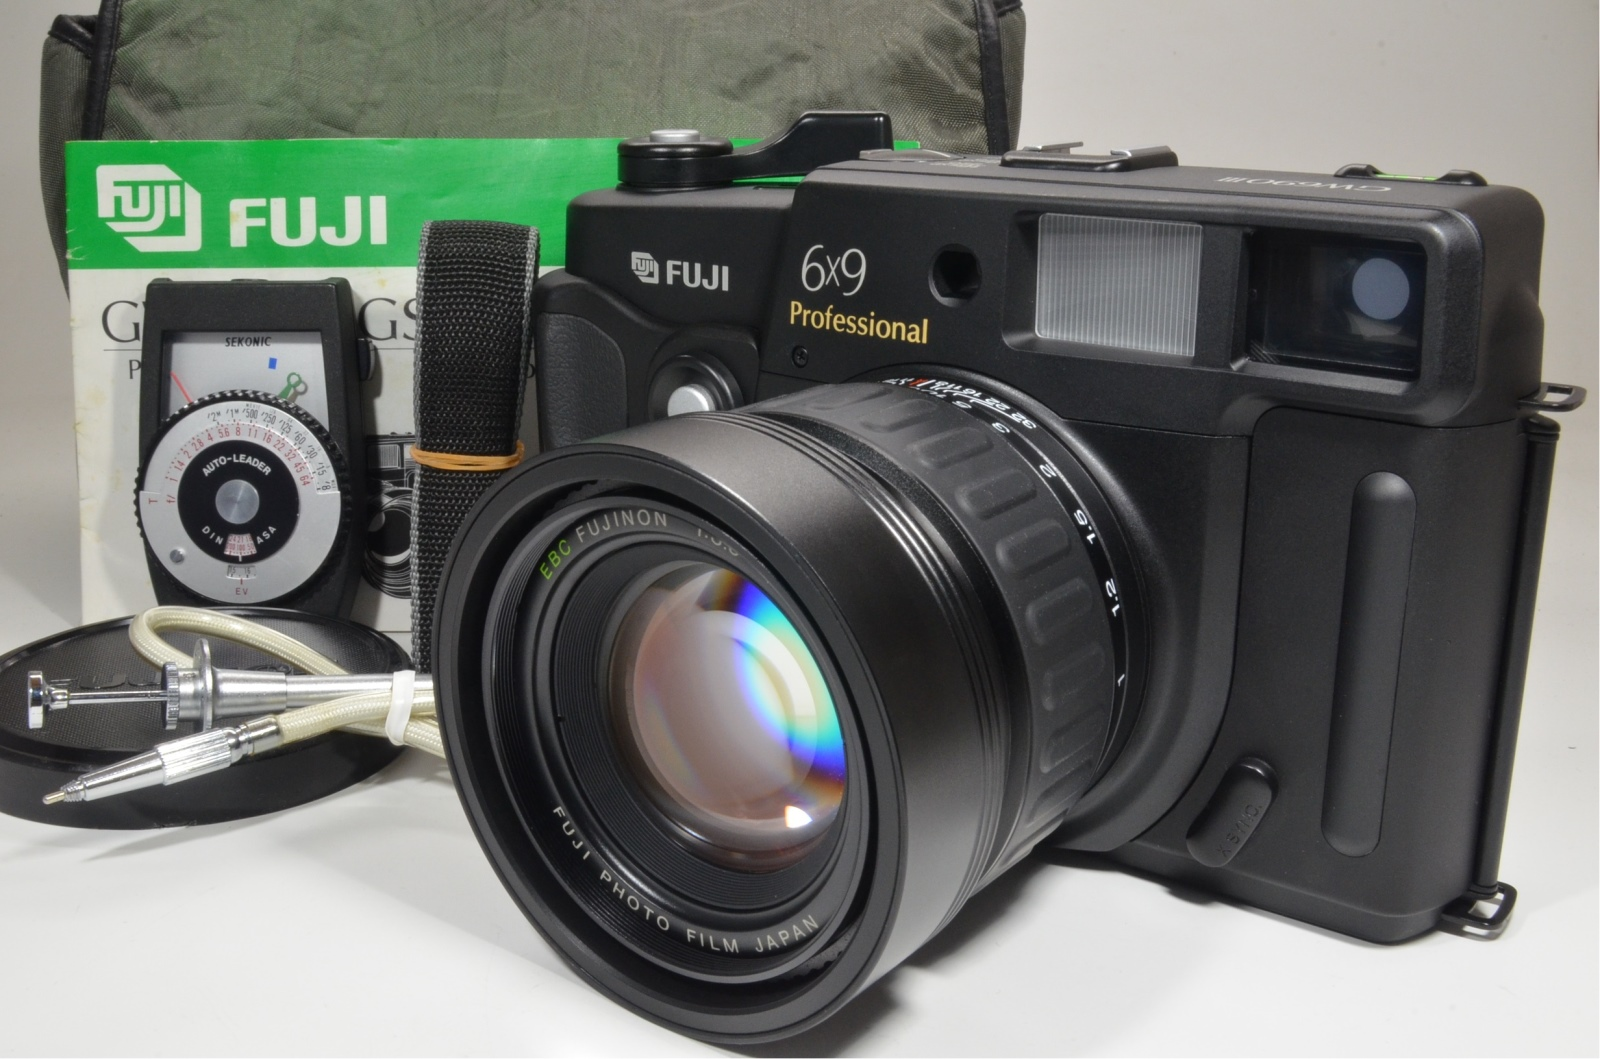 fuji fujifilm gw690iii 90mm f3.5 count only '015' with exposure meter